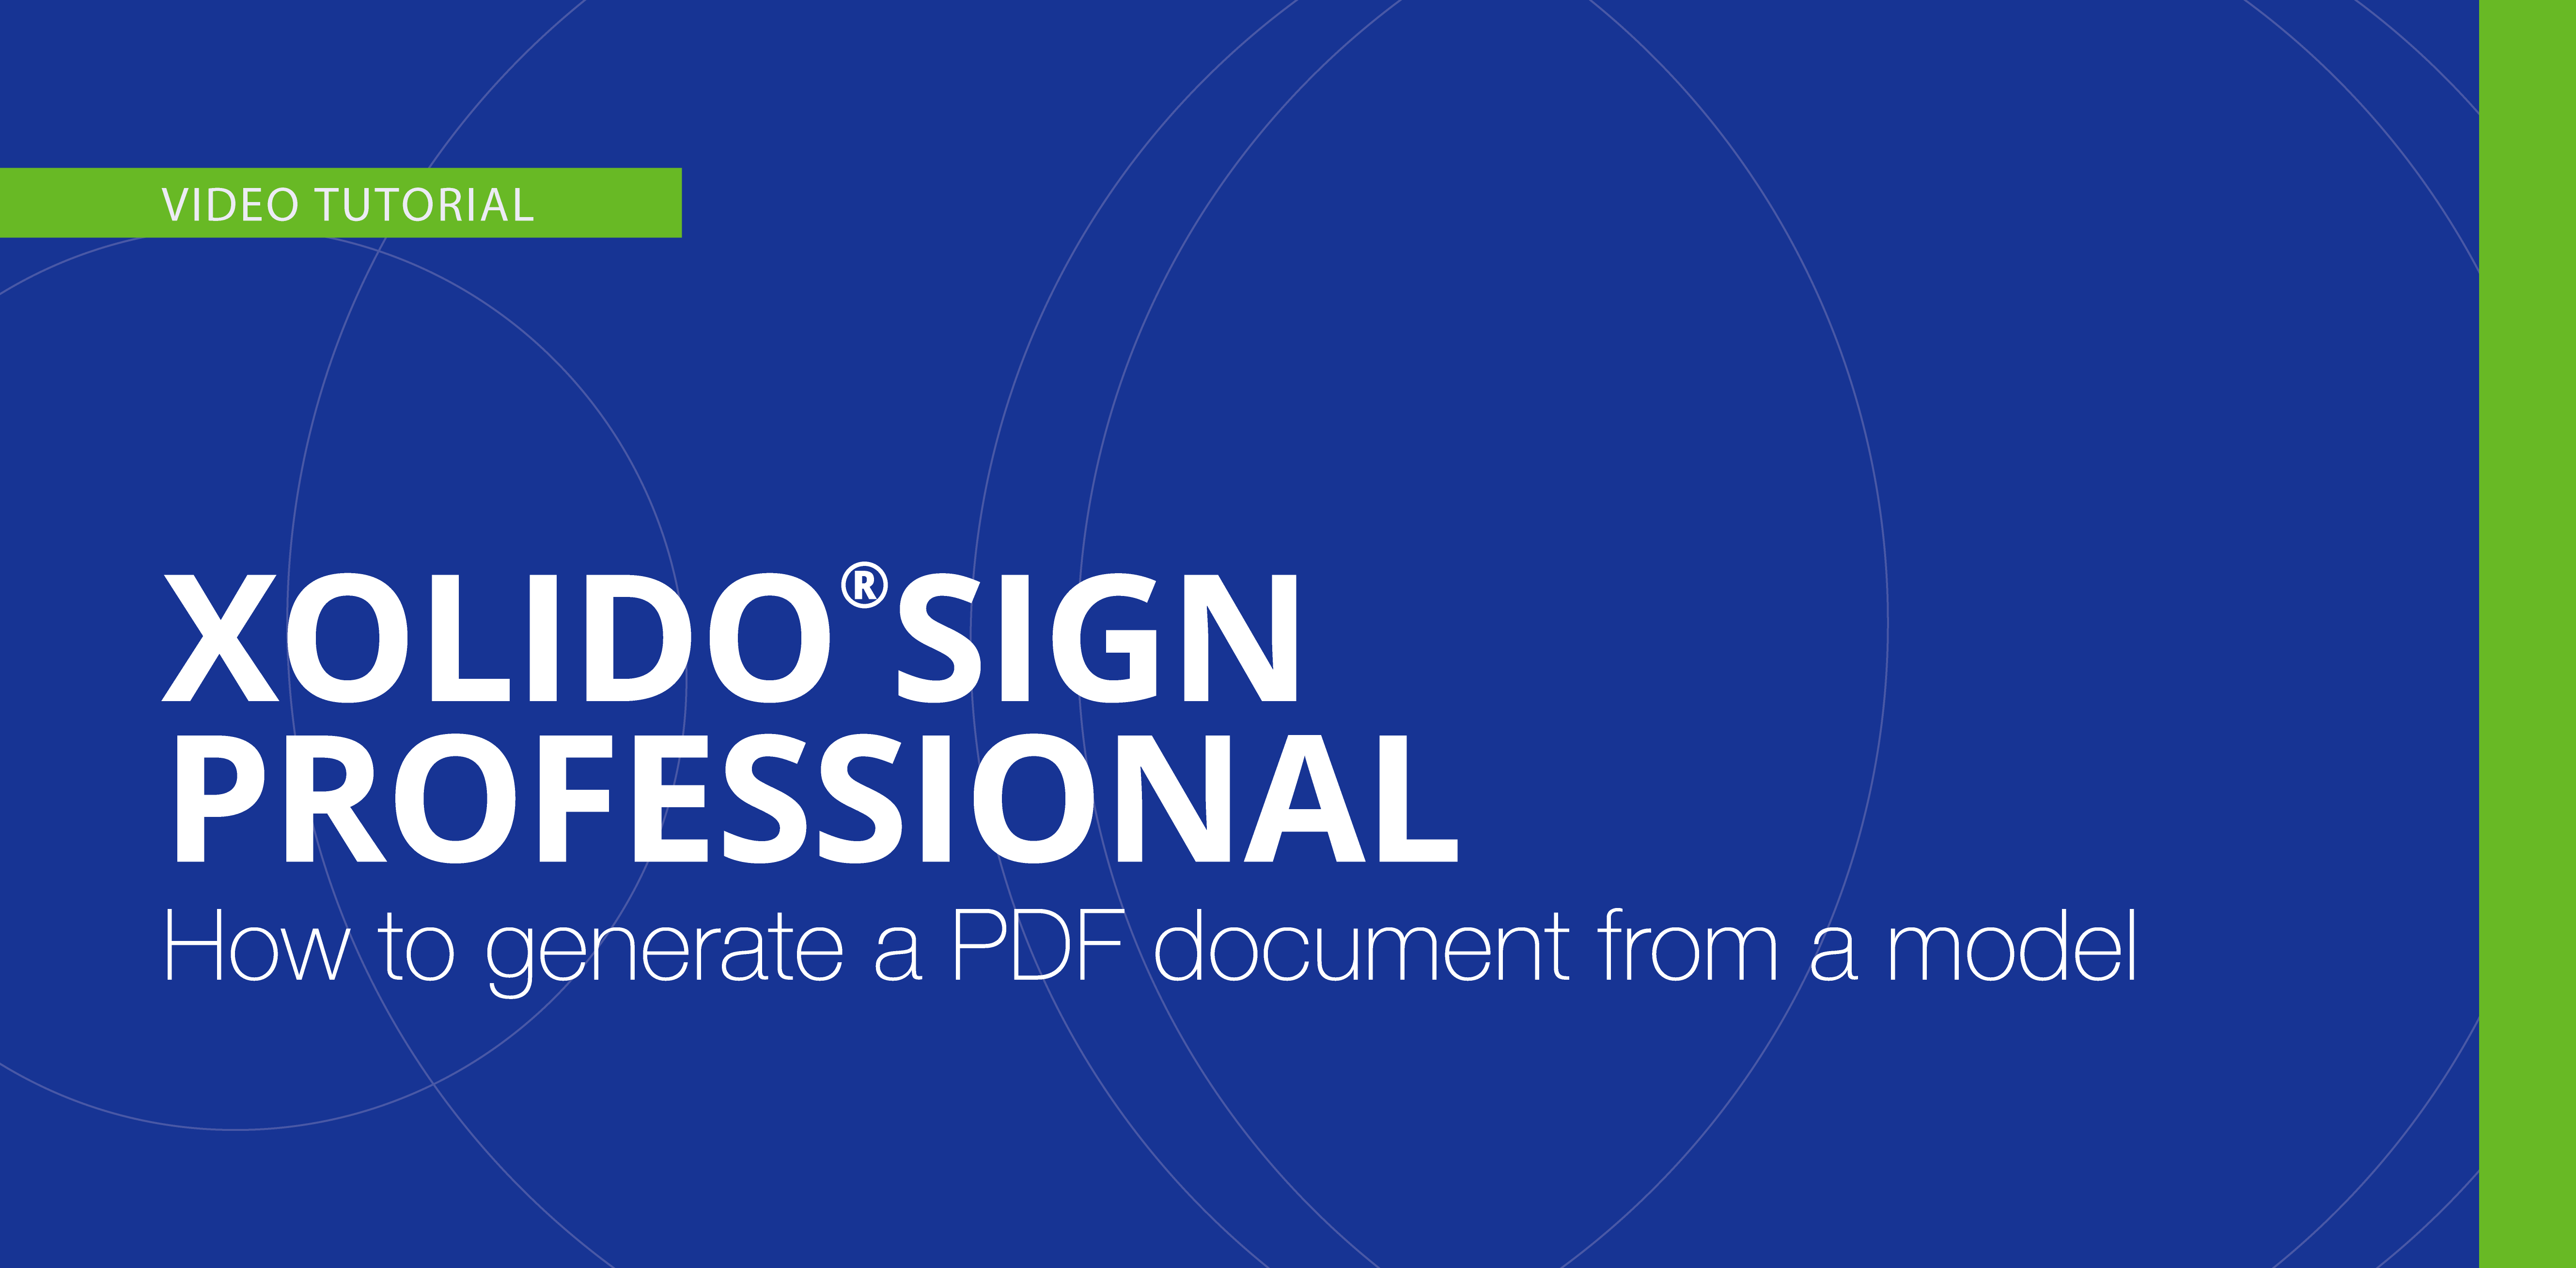 How to generate a PDF document from a model